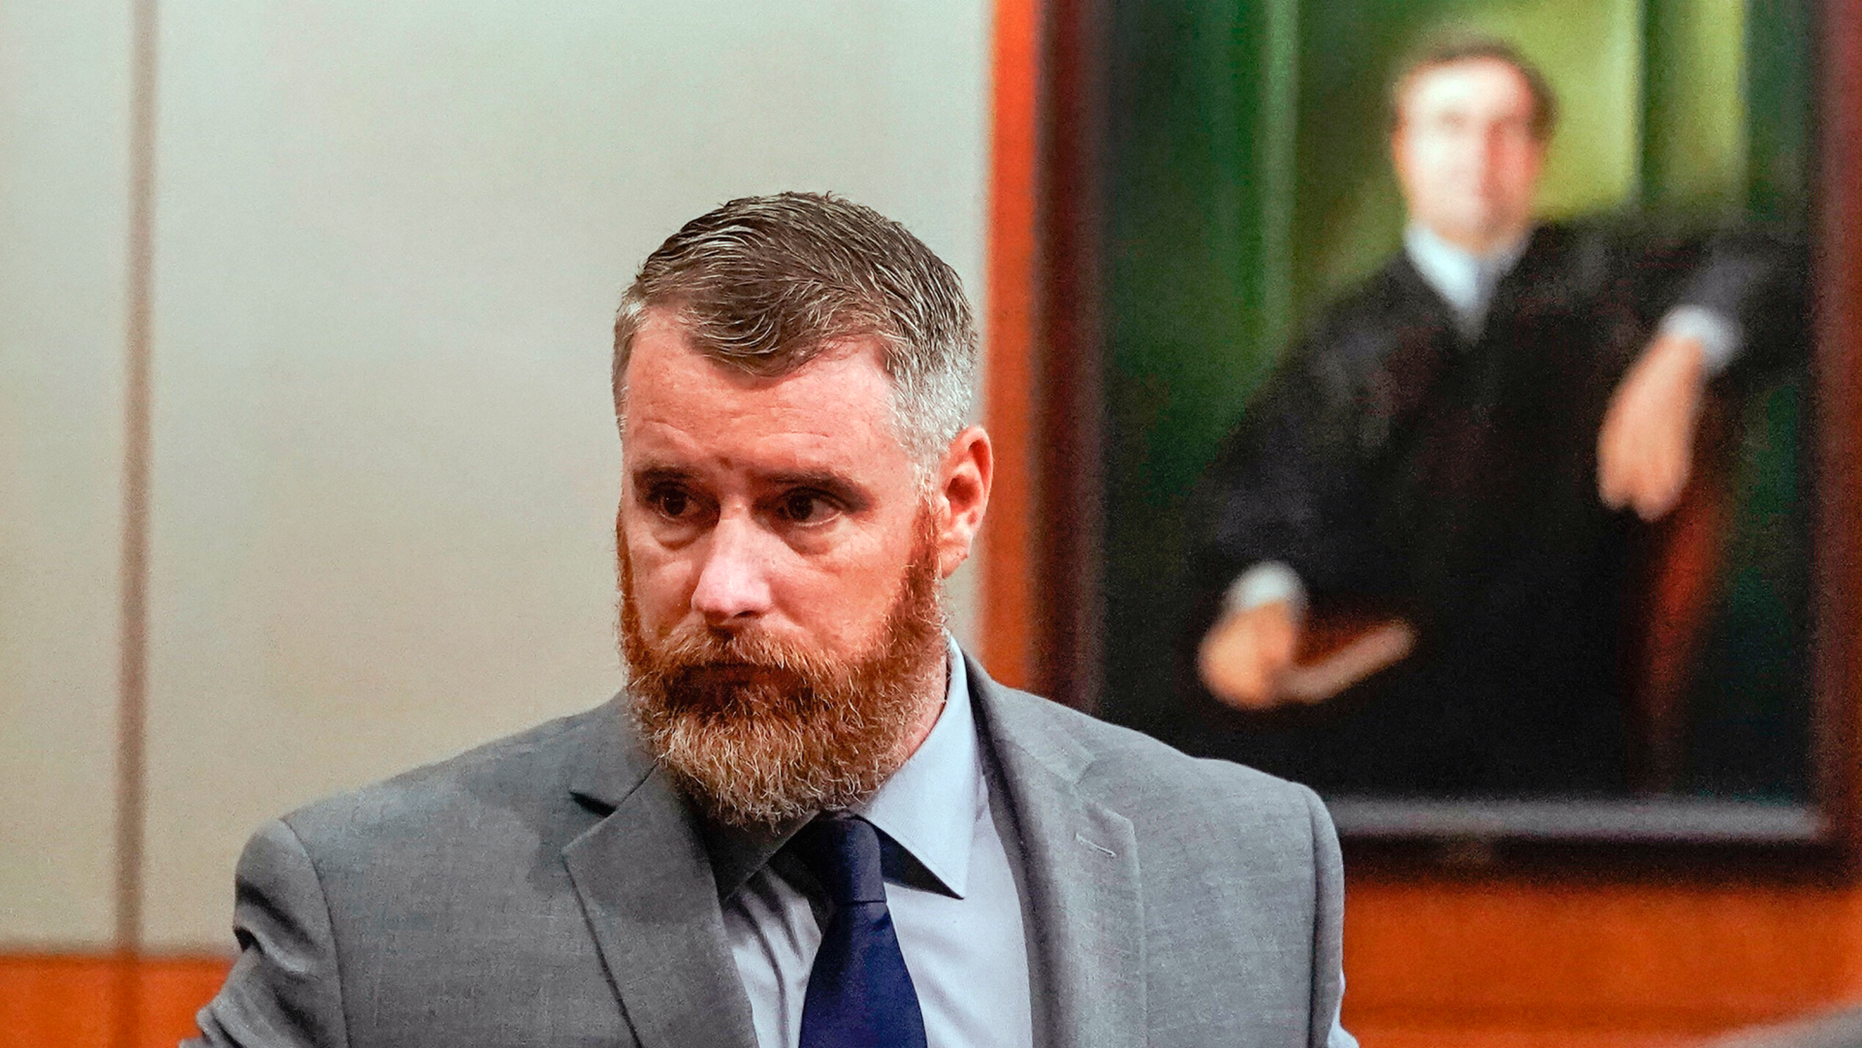 FILE - In this June 13, 2018, file photo, Terry Thompson, accused of fatally choking John Hernandez, left, is shown in court in Houston. Thompson is standing trial again on a murder charge in the strangling of Hernandez, a man he and his wife confronted outside a Houston-area restaurant in 2017. Thompson's first trial in June ended in a mistrial. (Melissa Phillip/Houston Chronicle via AP, Pool, File)